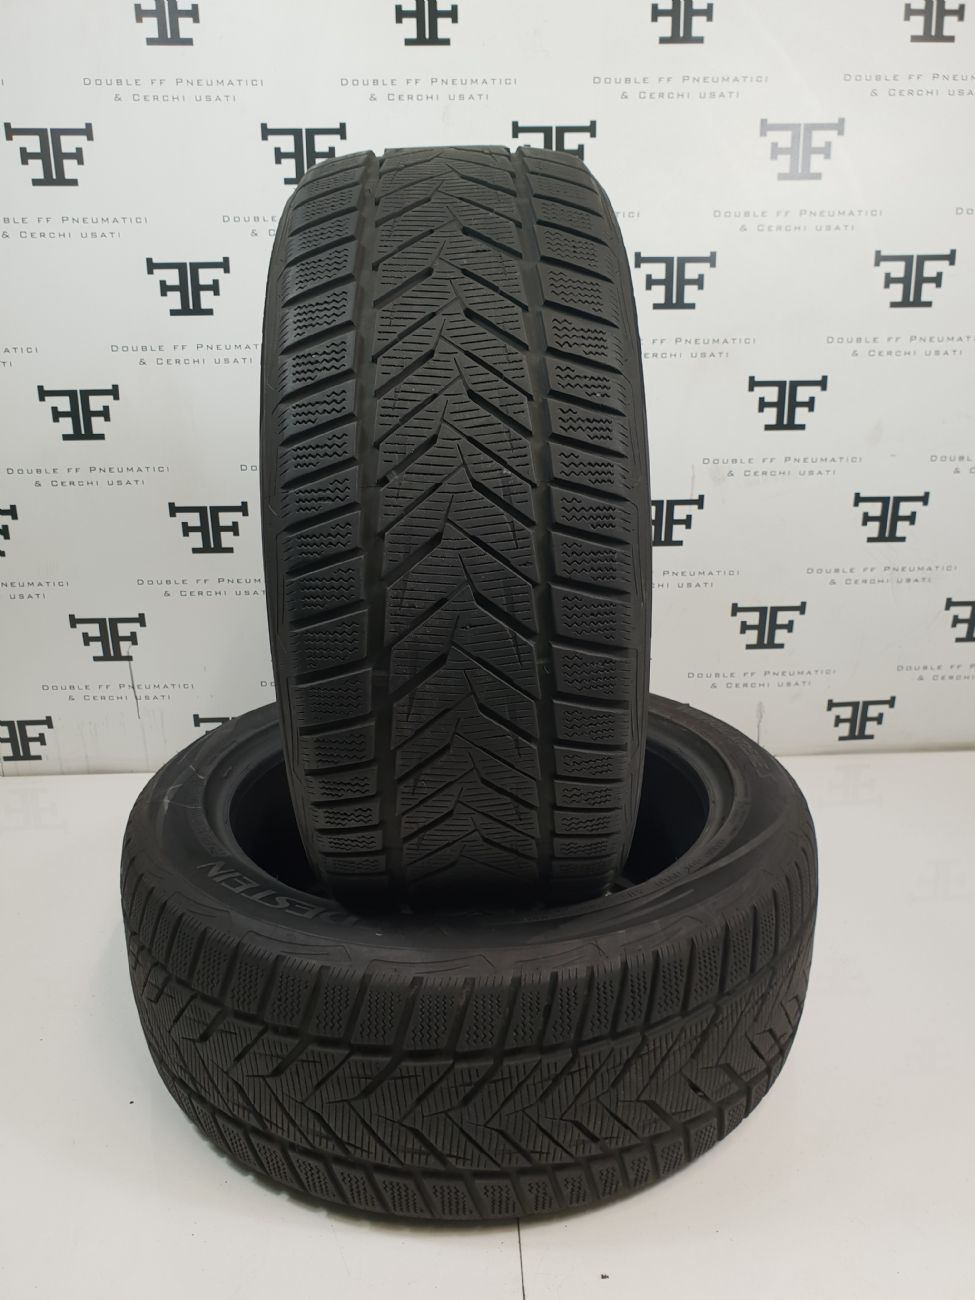 Pneumatici 215 50 R17 95 Y VREDESTEIN WINTRAC EXTREME S invernale usati 100€